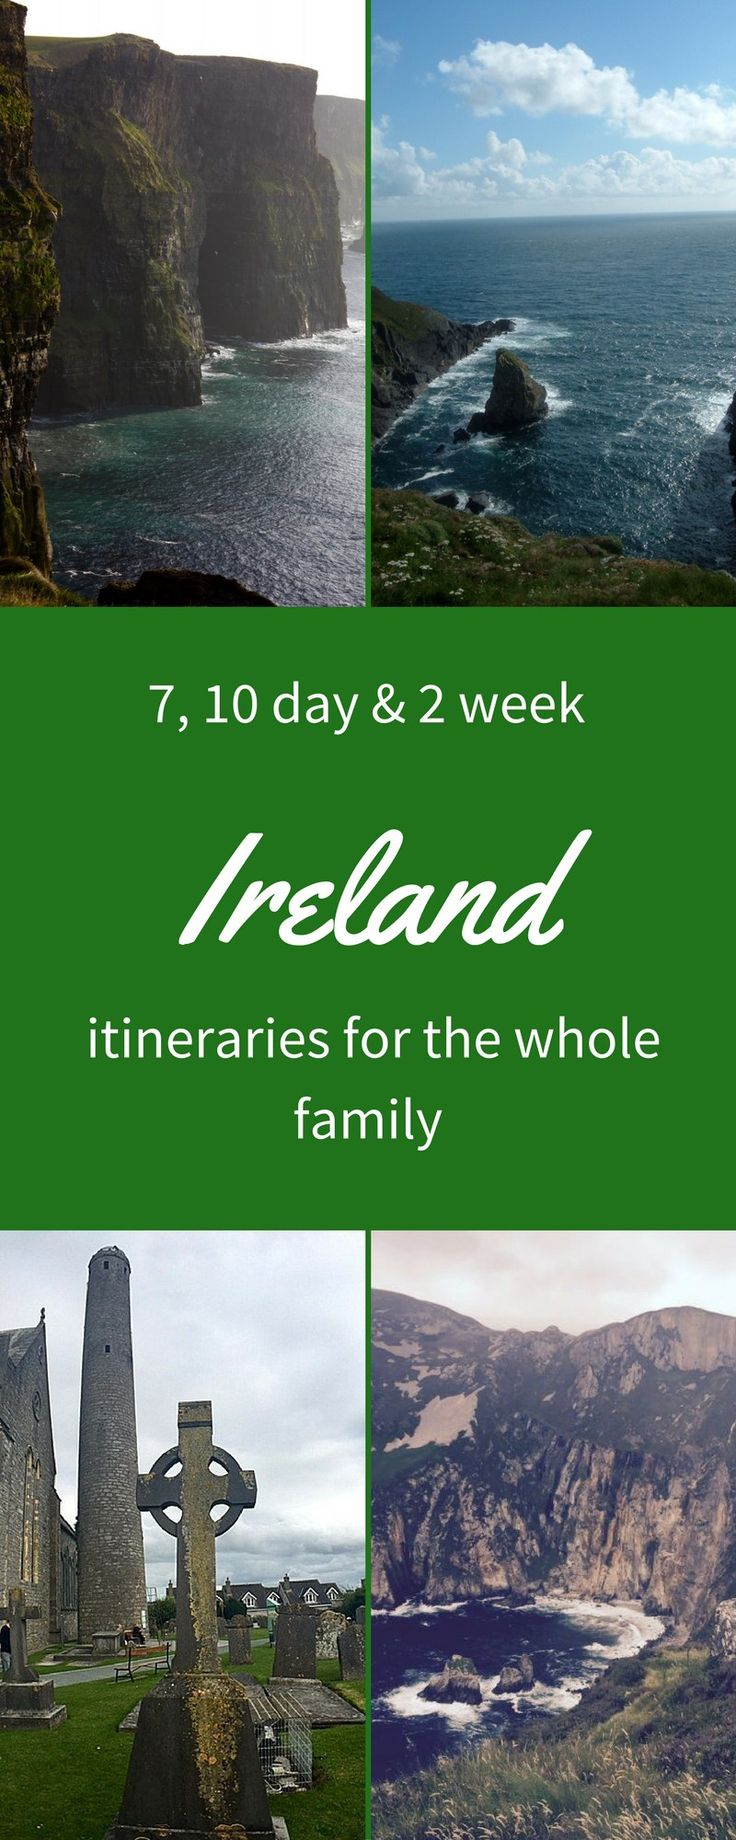 my ireland itinerary includes the cliffs of moher, three castle head, historical sites and Slieve league cliffs